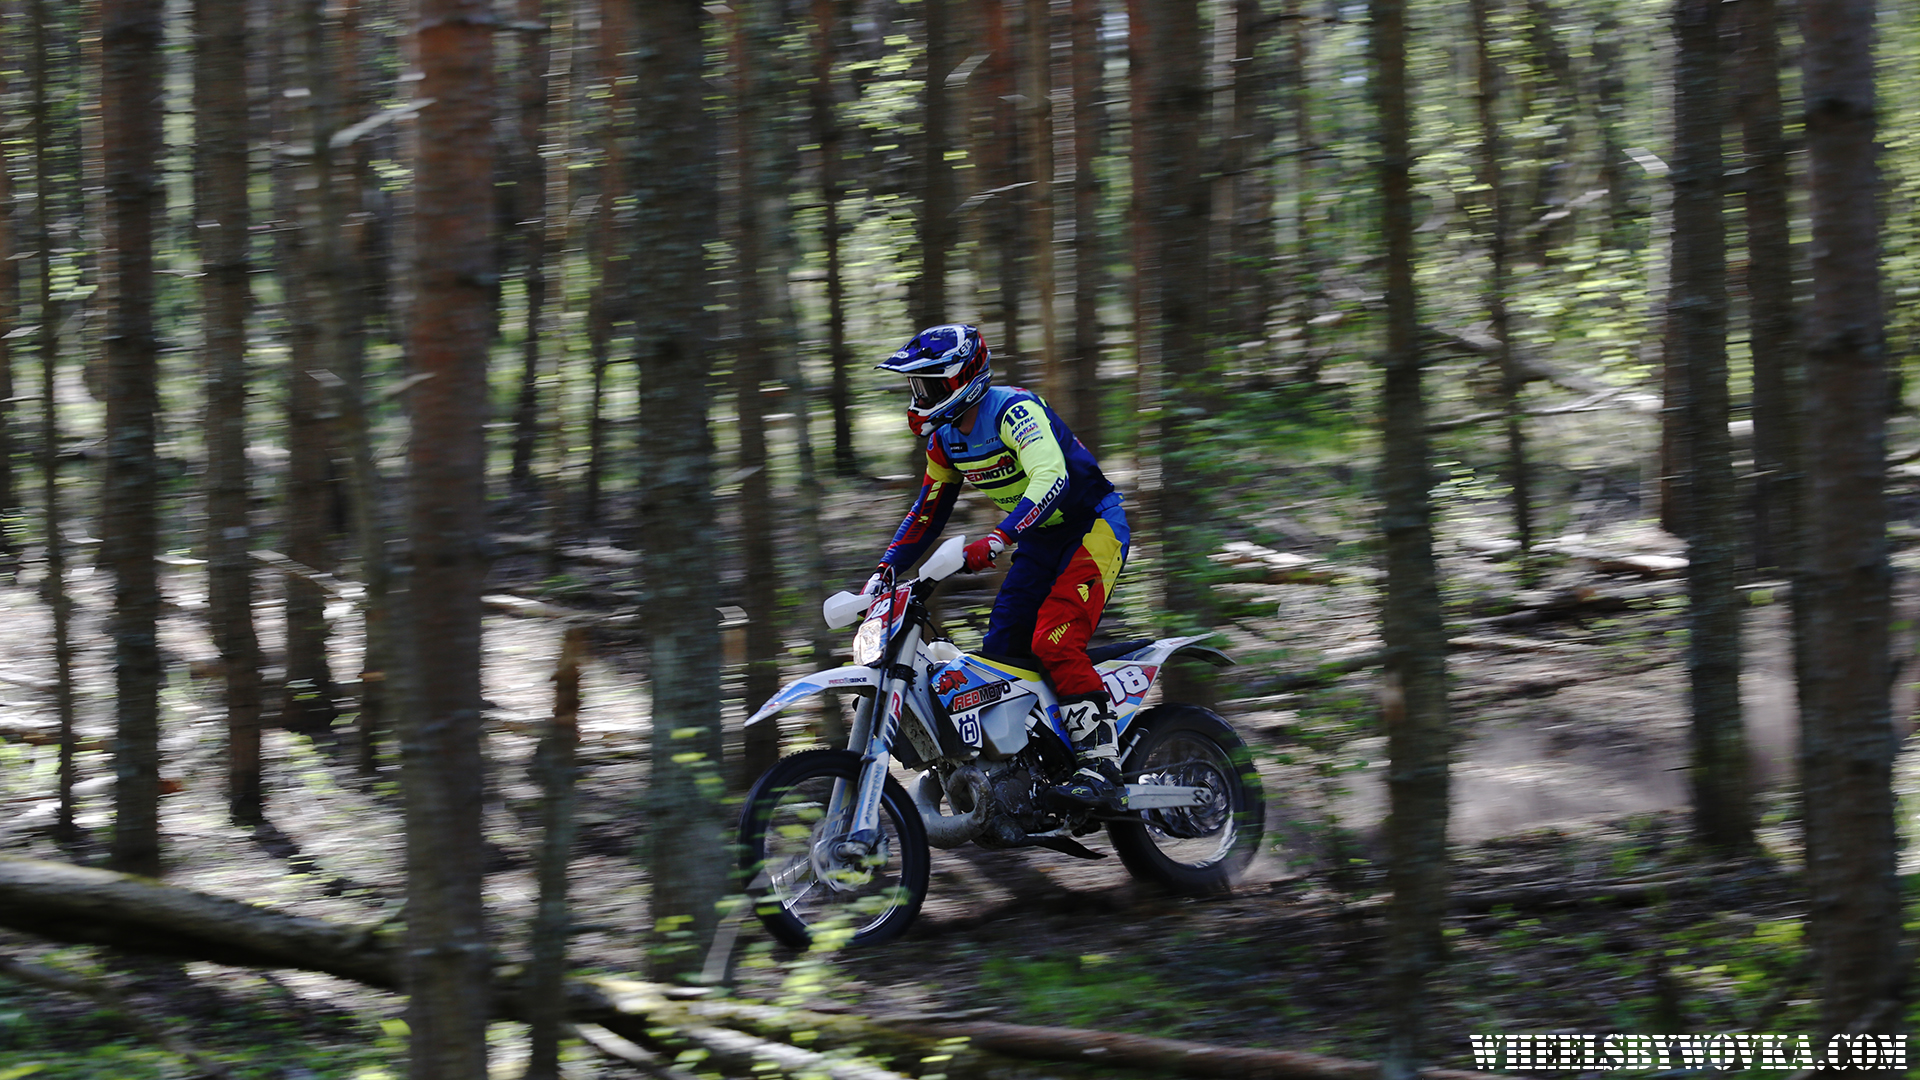 enduro-tallinn-estonia-gp-by-wheelsbywovka-9